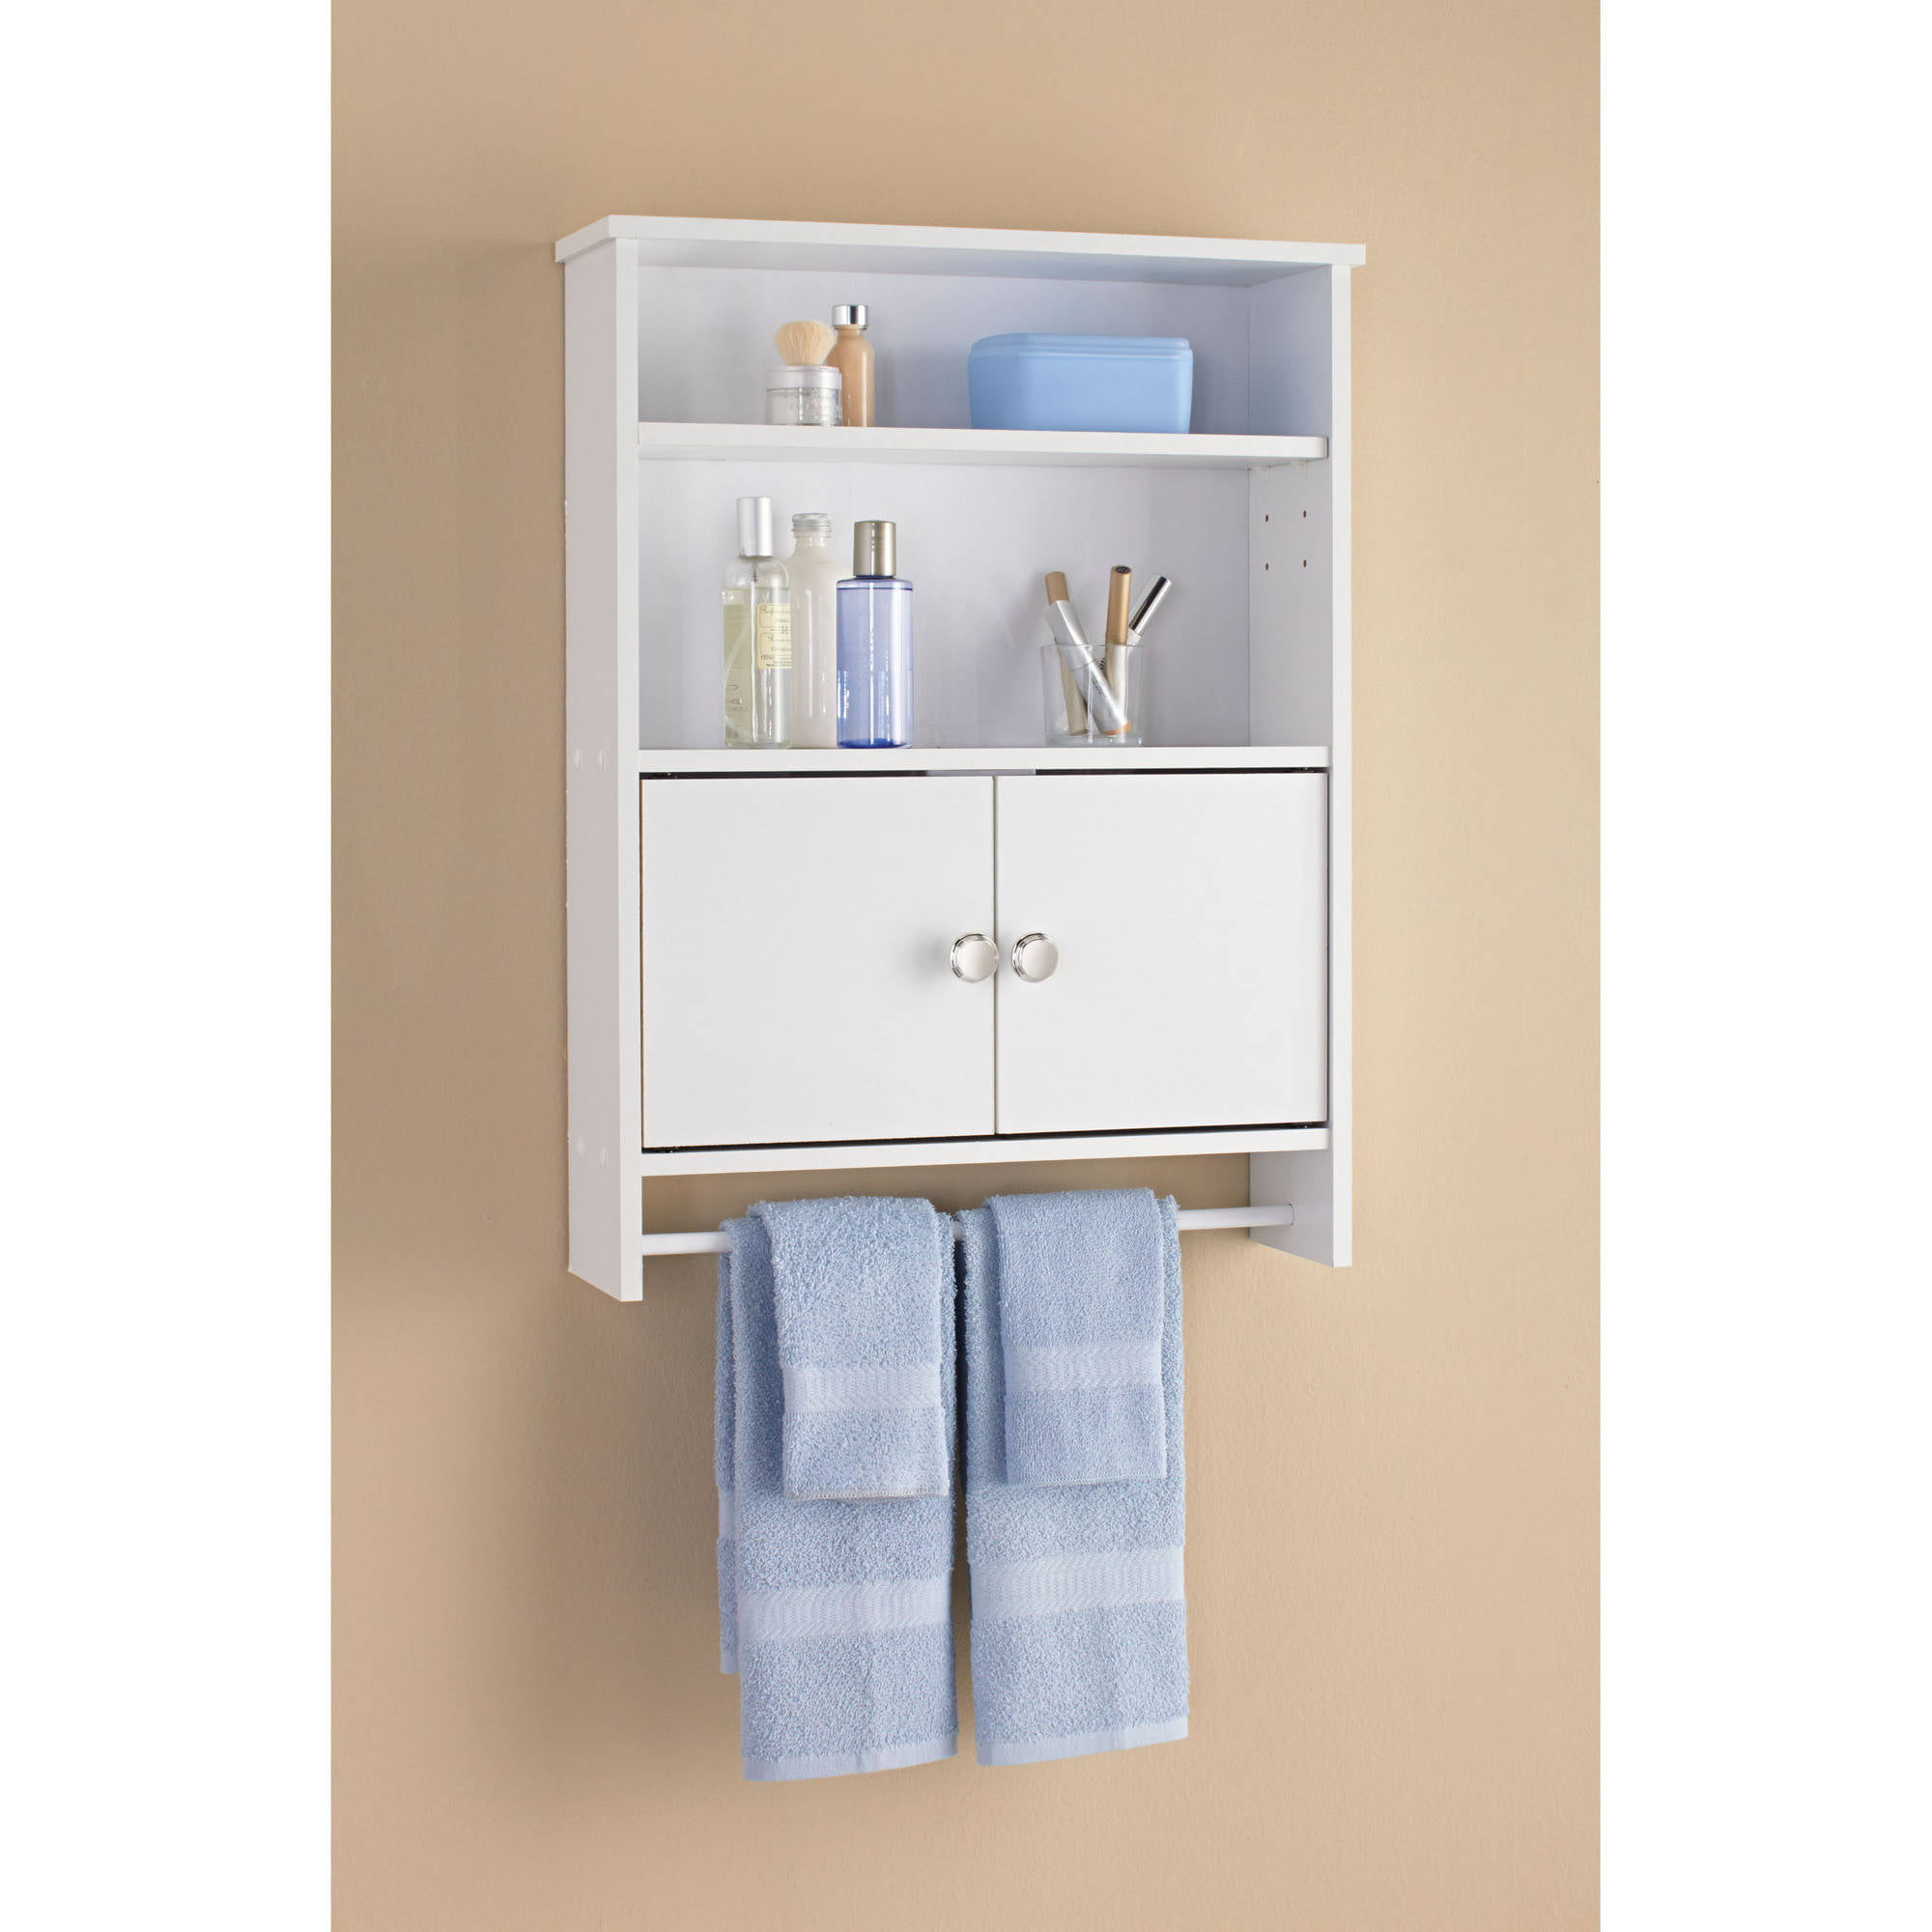 Mainstays 2-Door Bathroom Wall Cabinet, White - Walmart.com